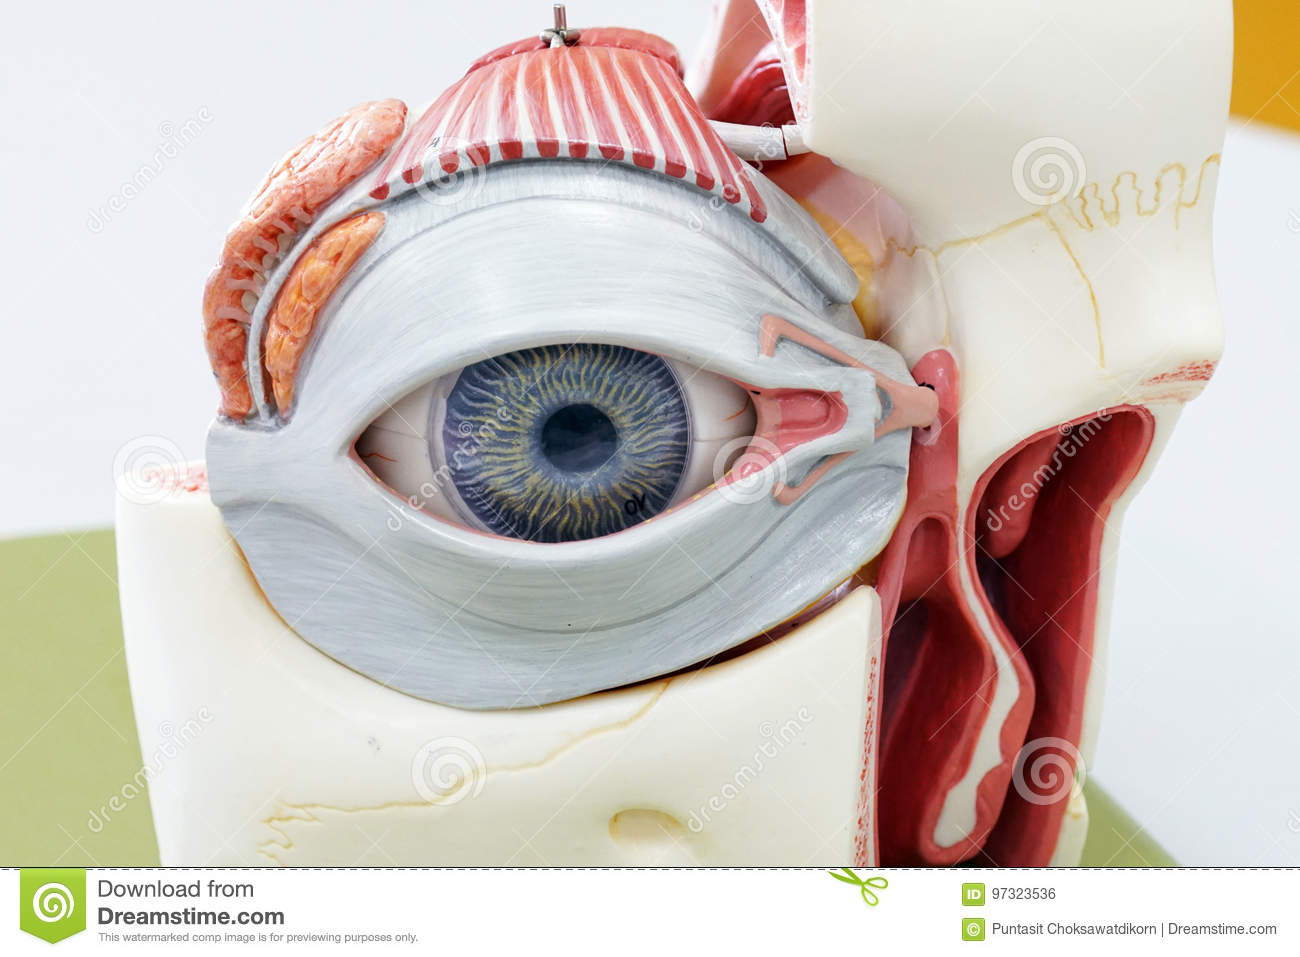 Human eye model stock photo. Image of head, medicine - 97323536